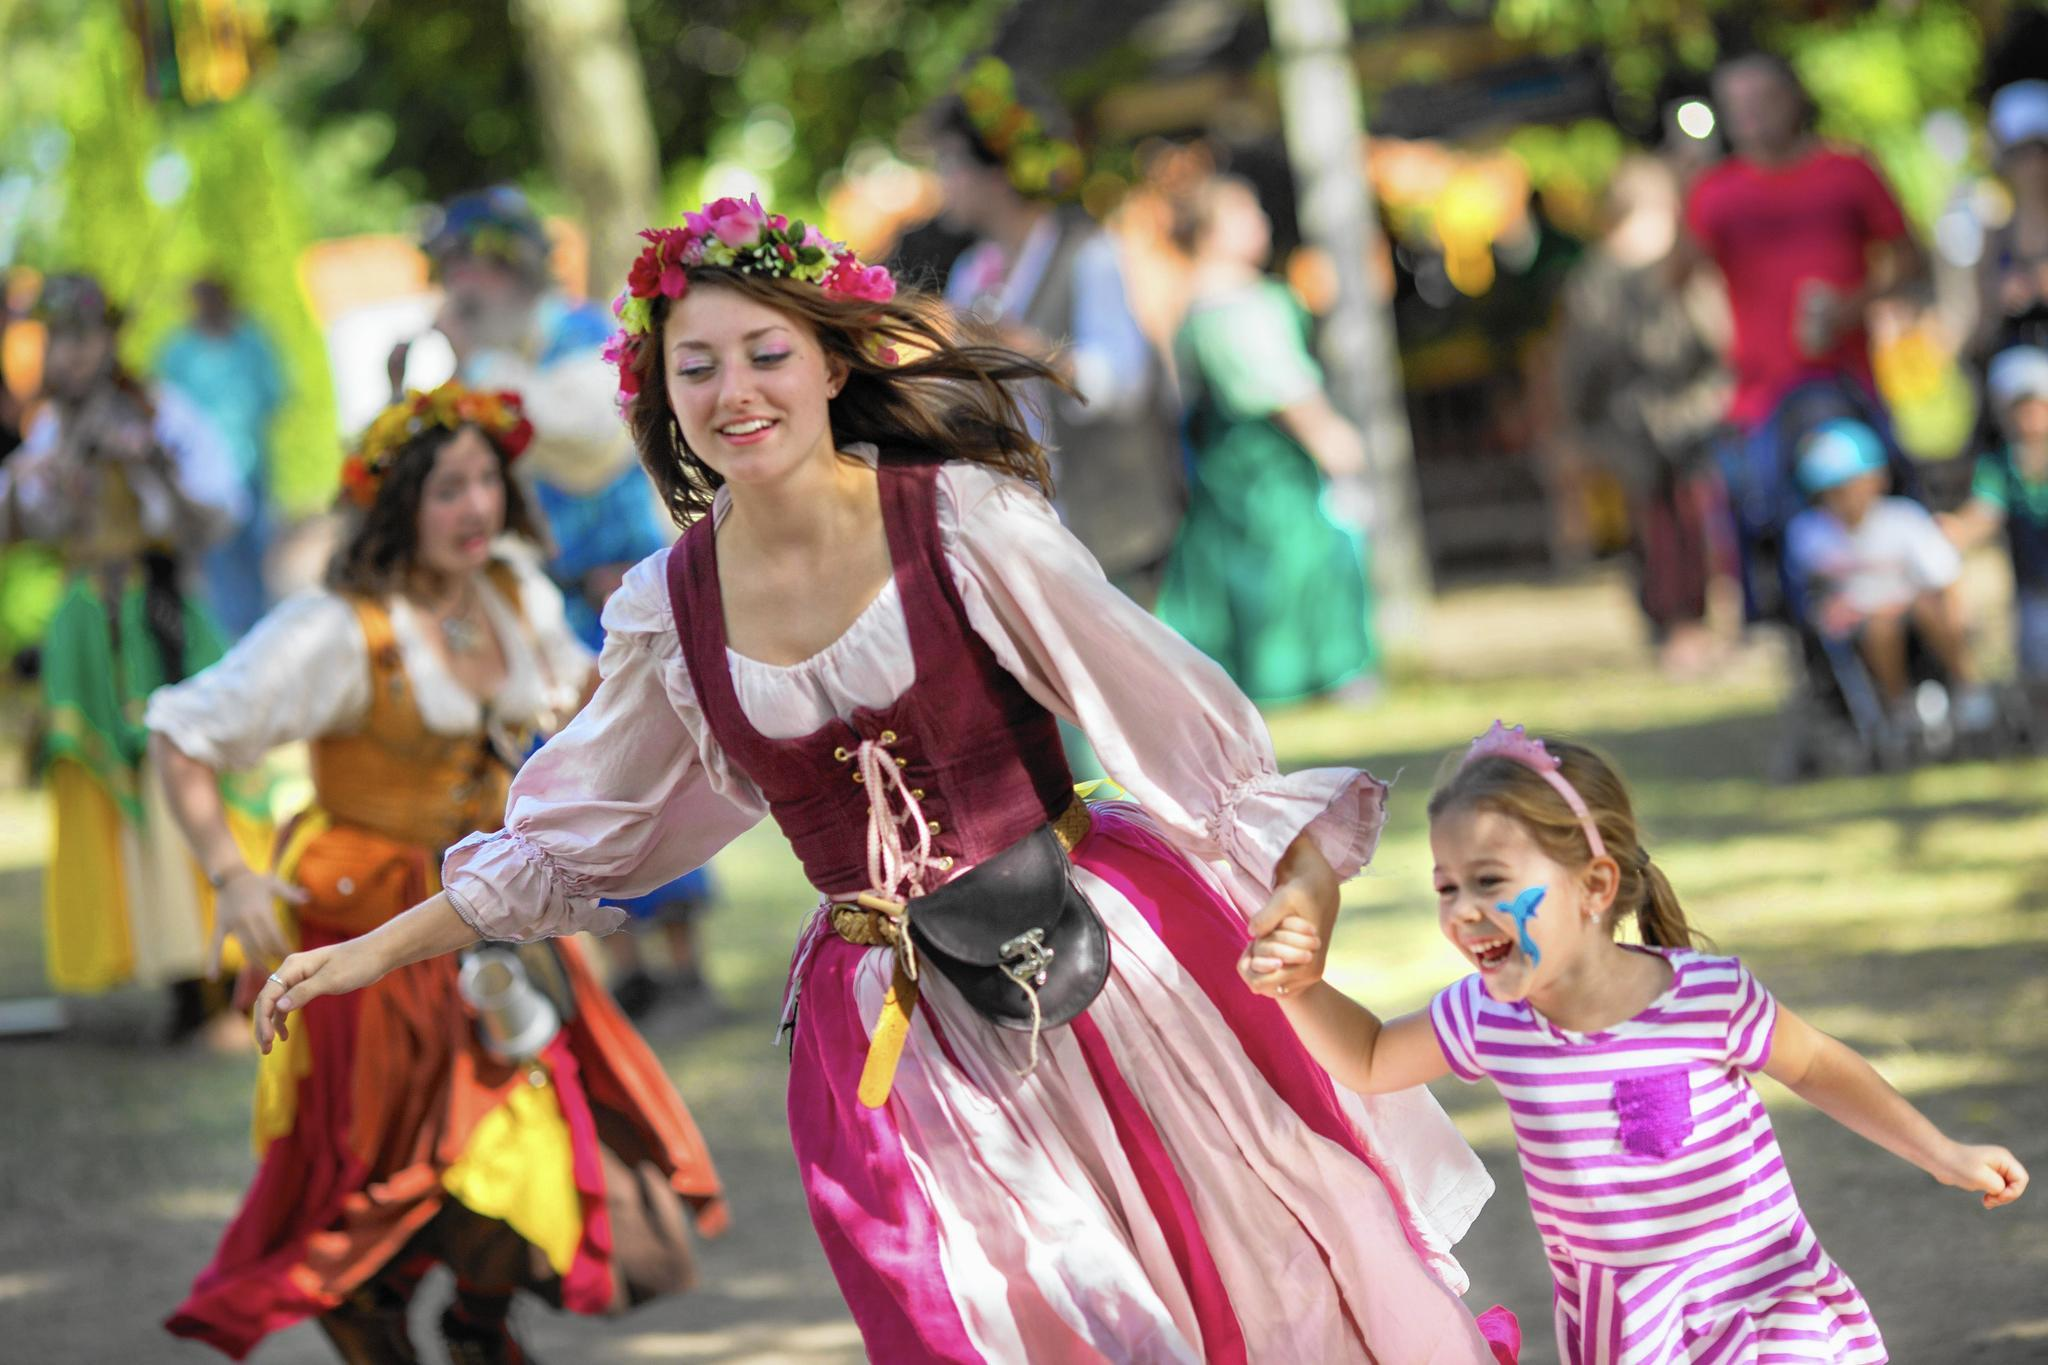 Faire marks 30 years with cosplay, jousting, RenQuest